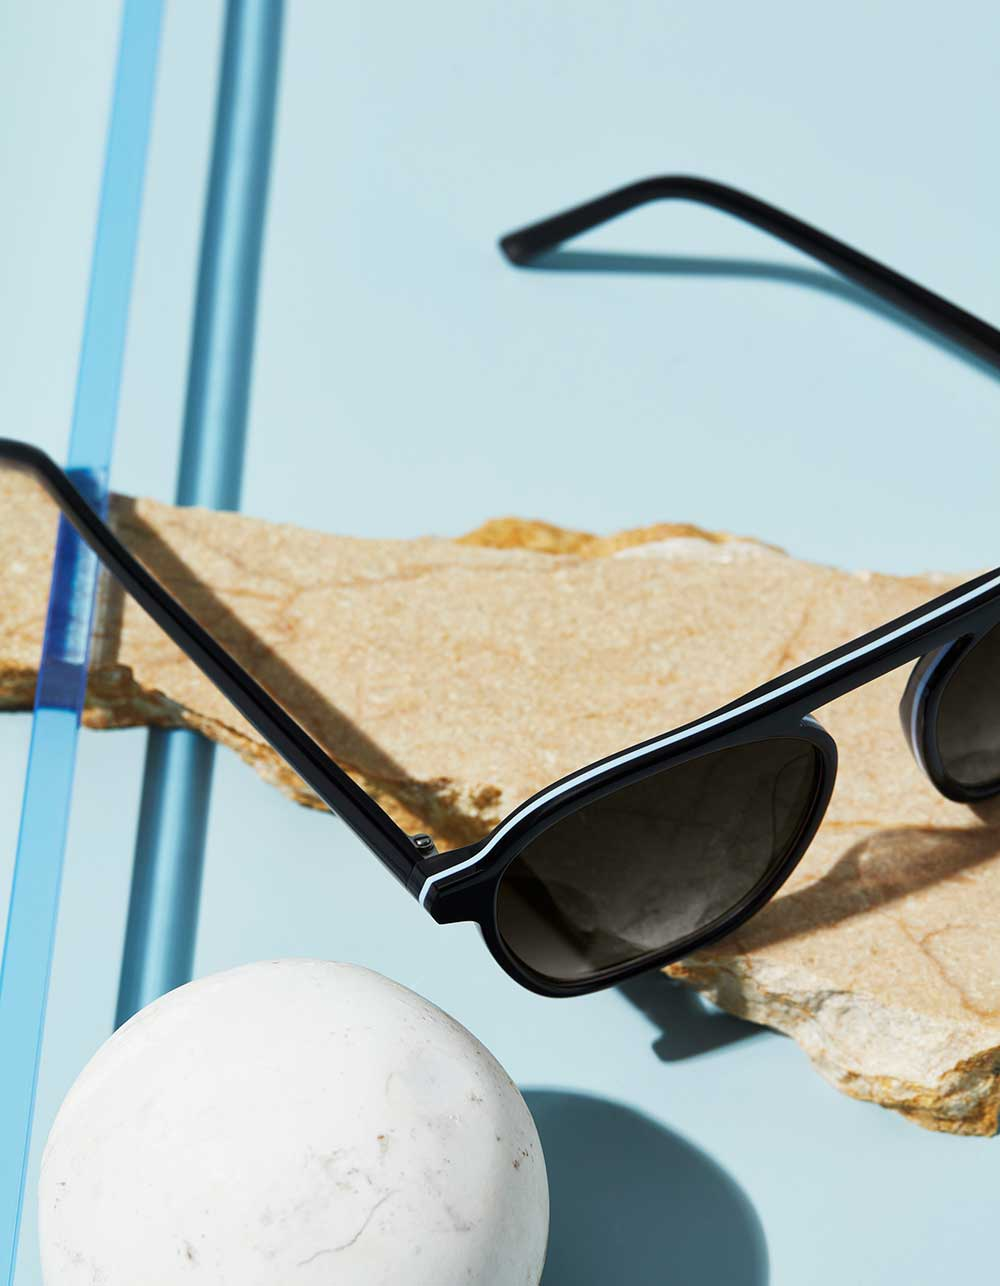 Dorian Sunglasses from Warby Parker